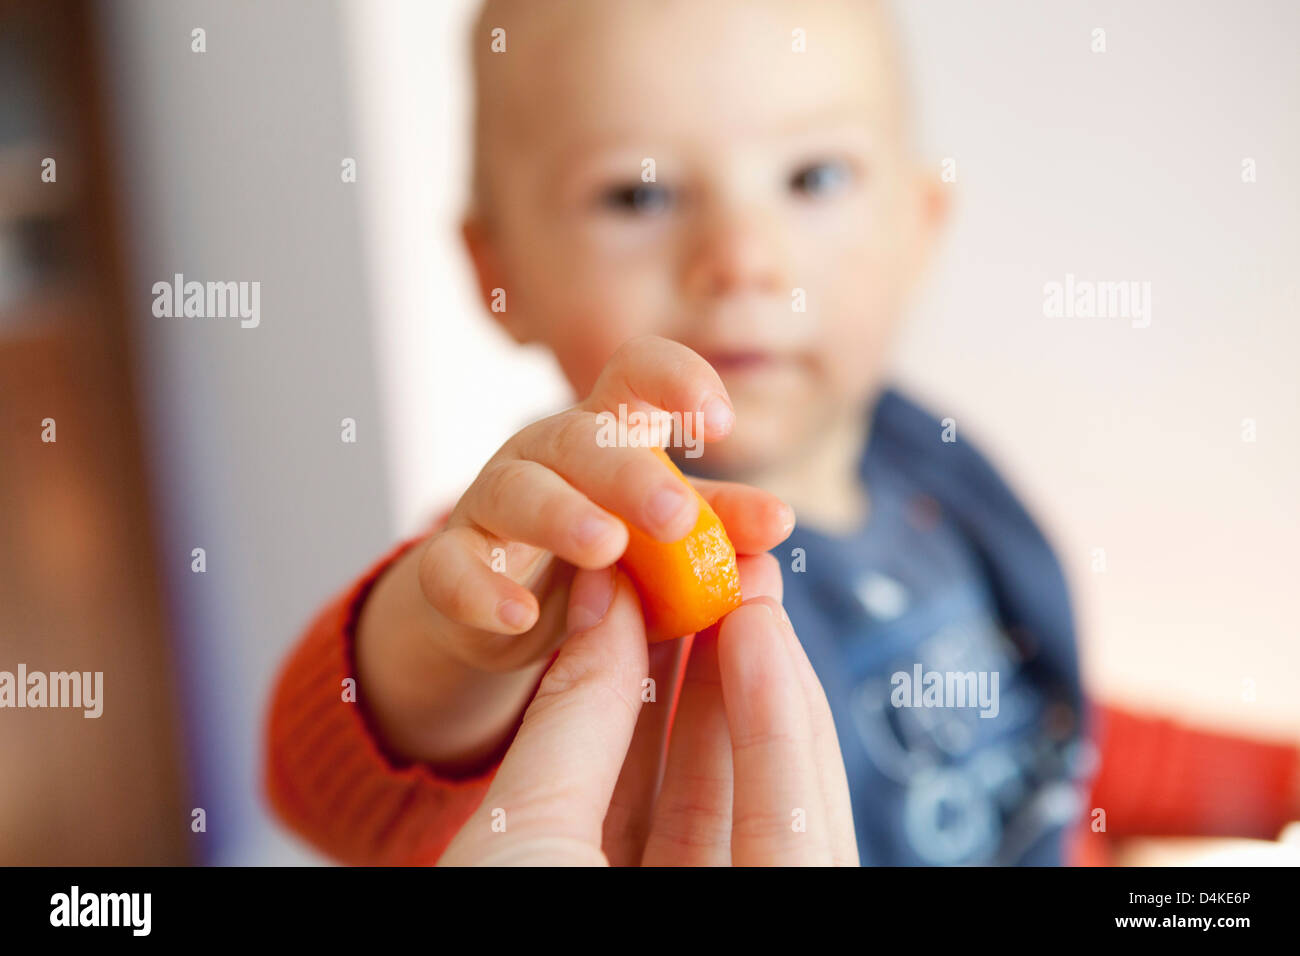 Mother hand baby boy piece of fruit - Stock Image